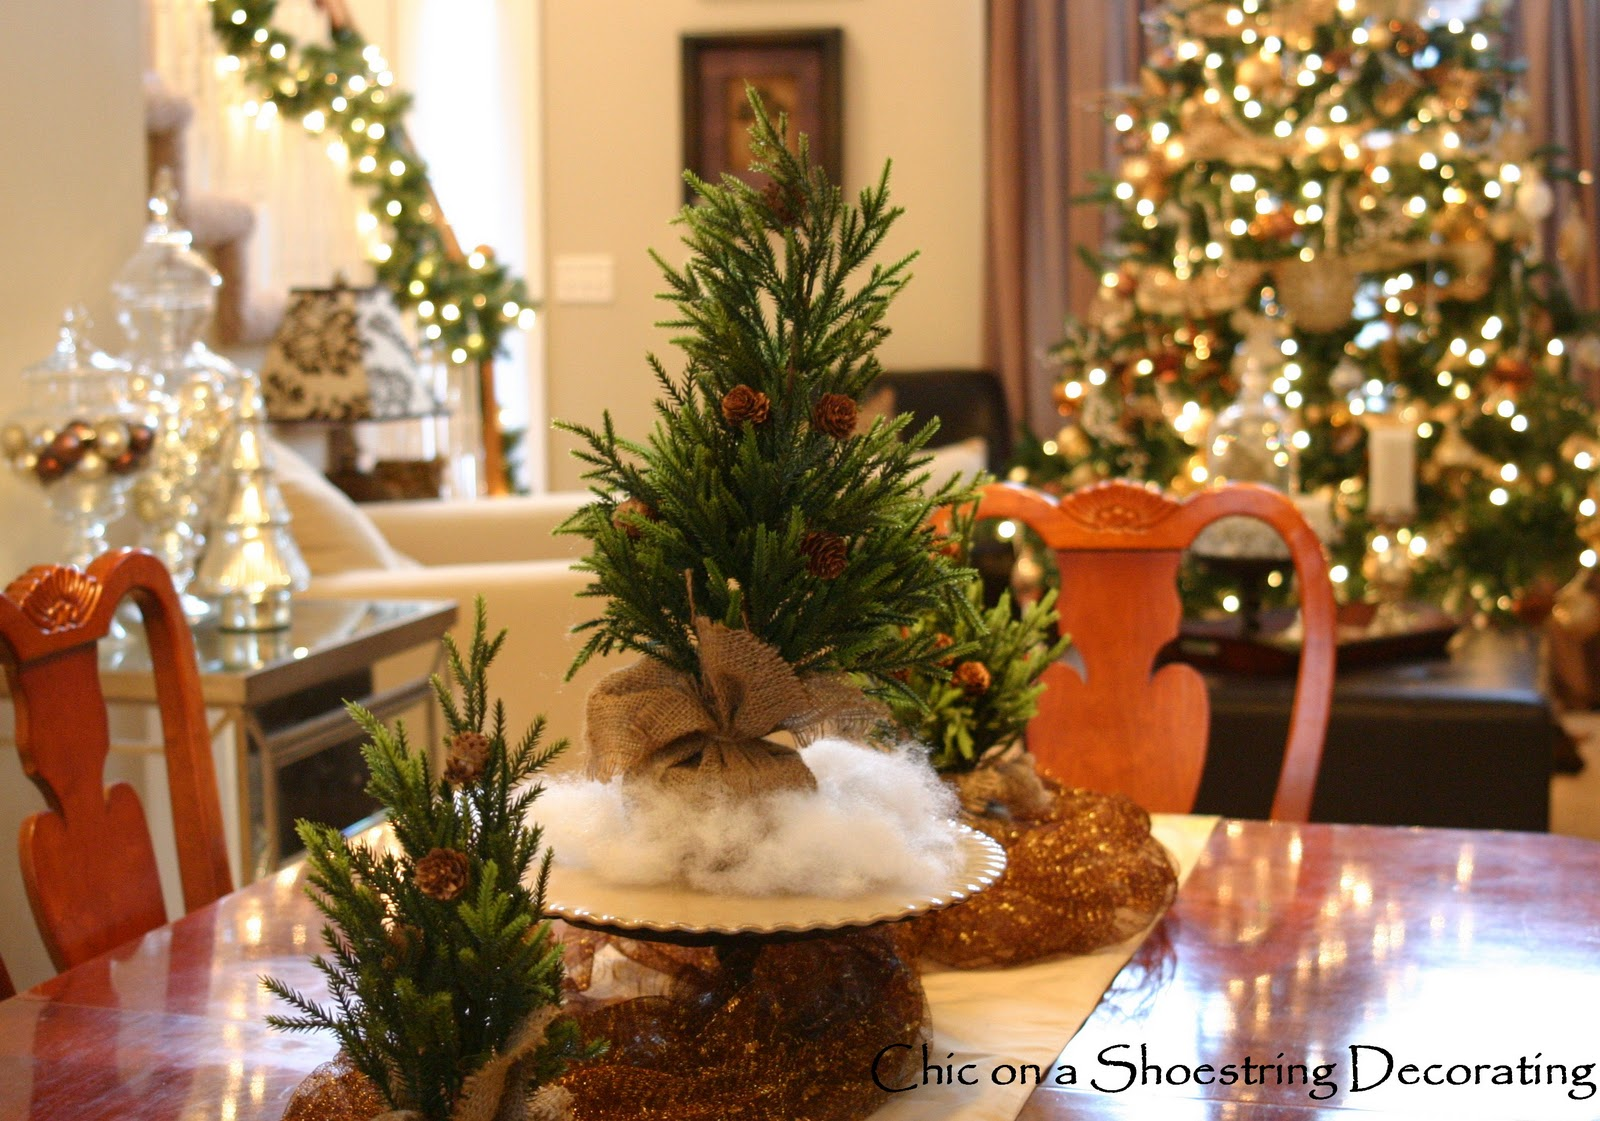 chic on a shoestring decorating christmas home tour 2011 - Elegant Christmas Dining Room Decorations